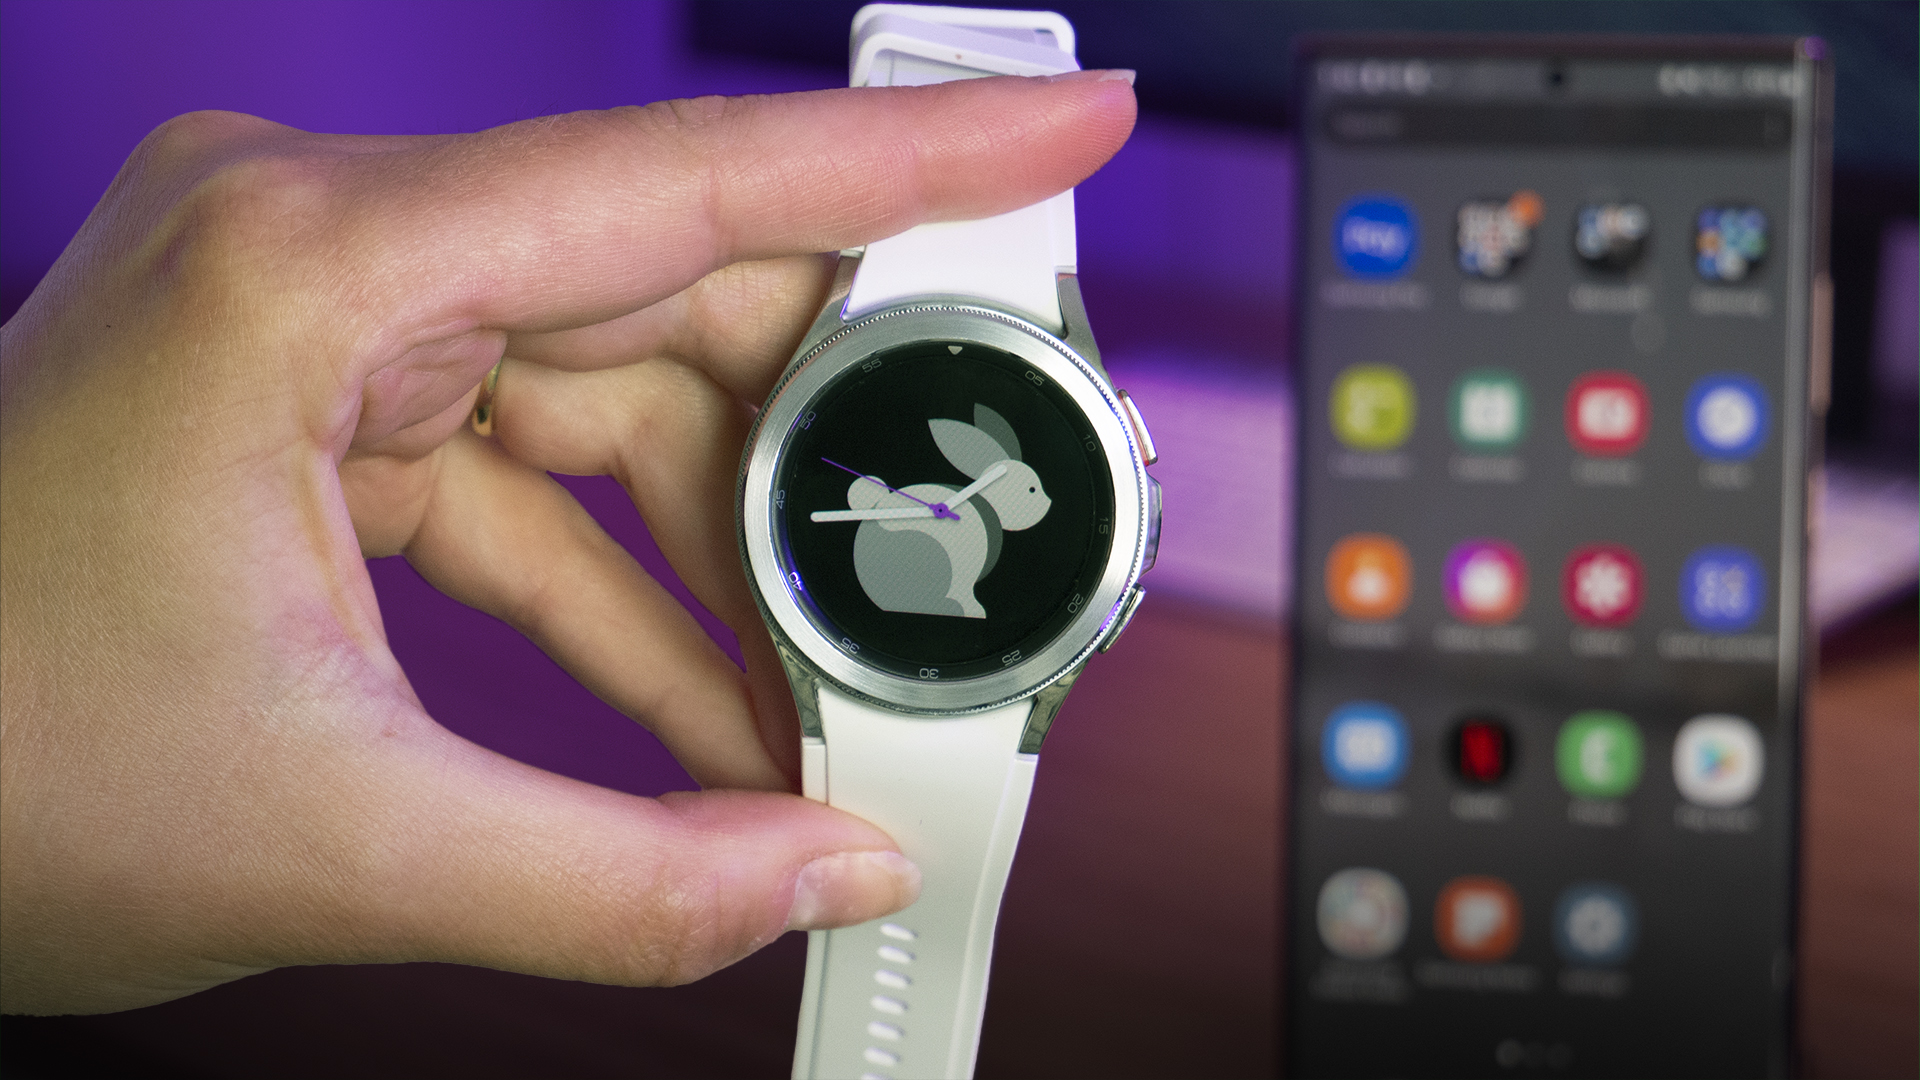 Video: Set up the Galaxy Watch 4 with your phone